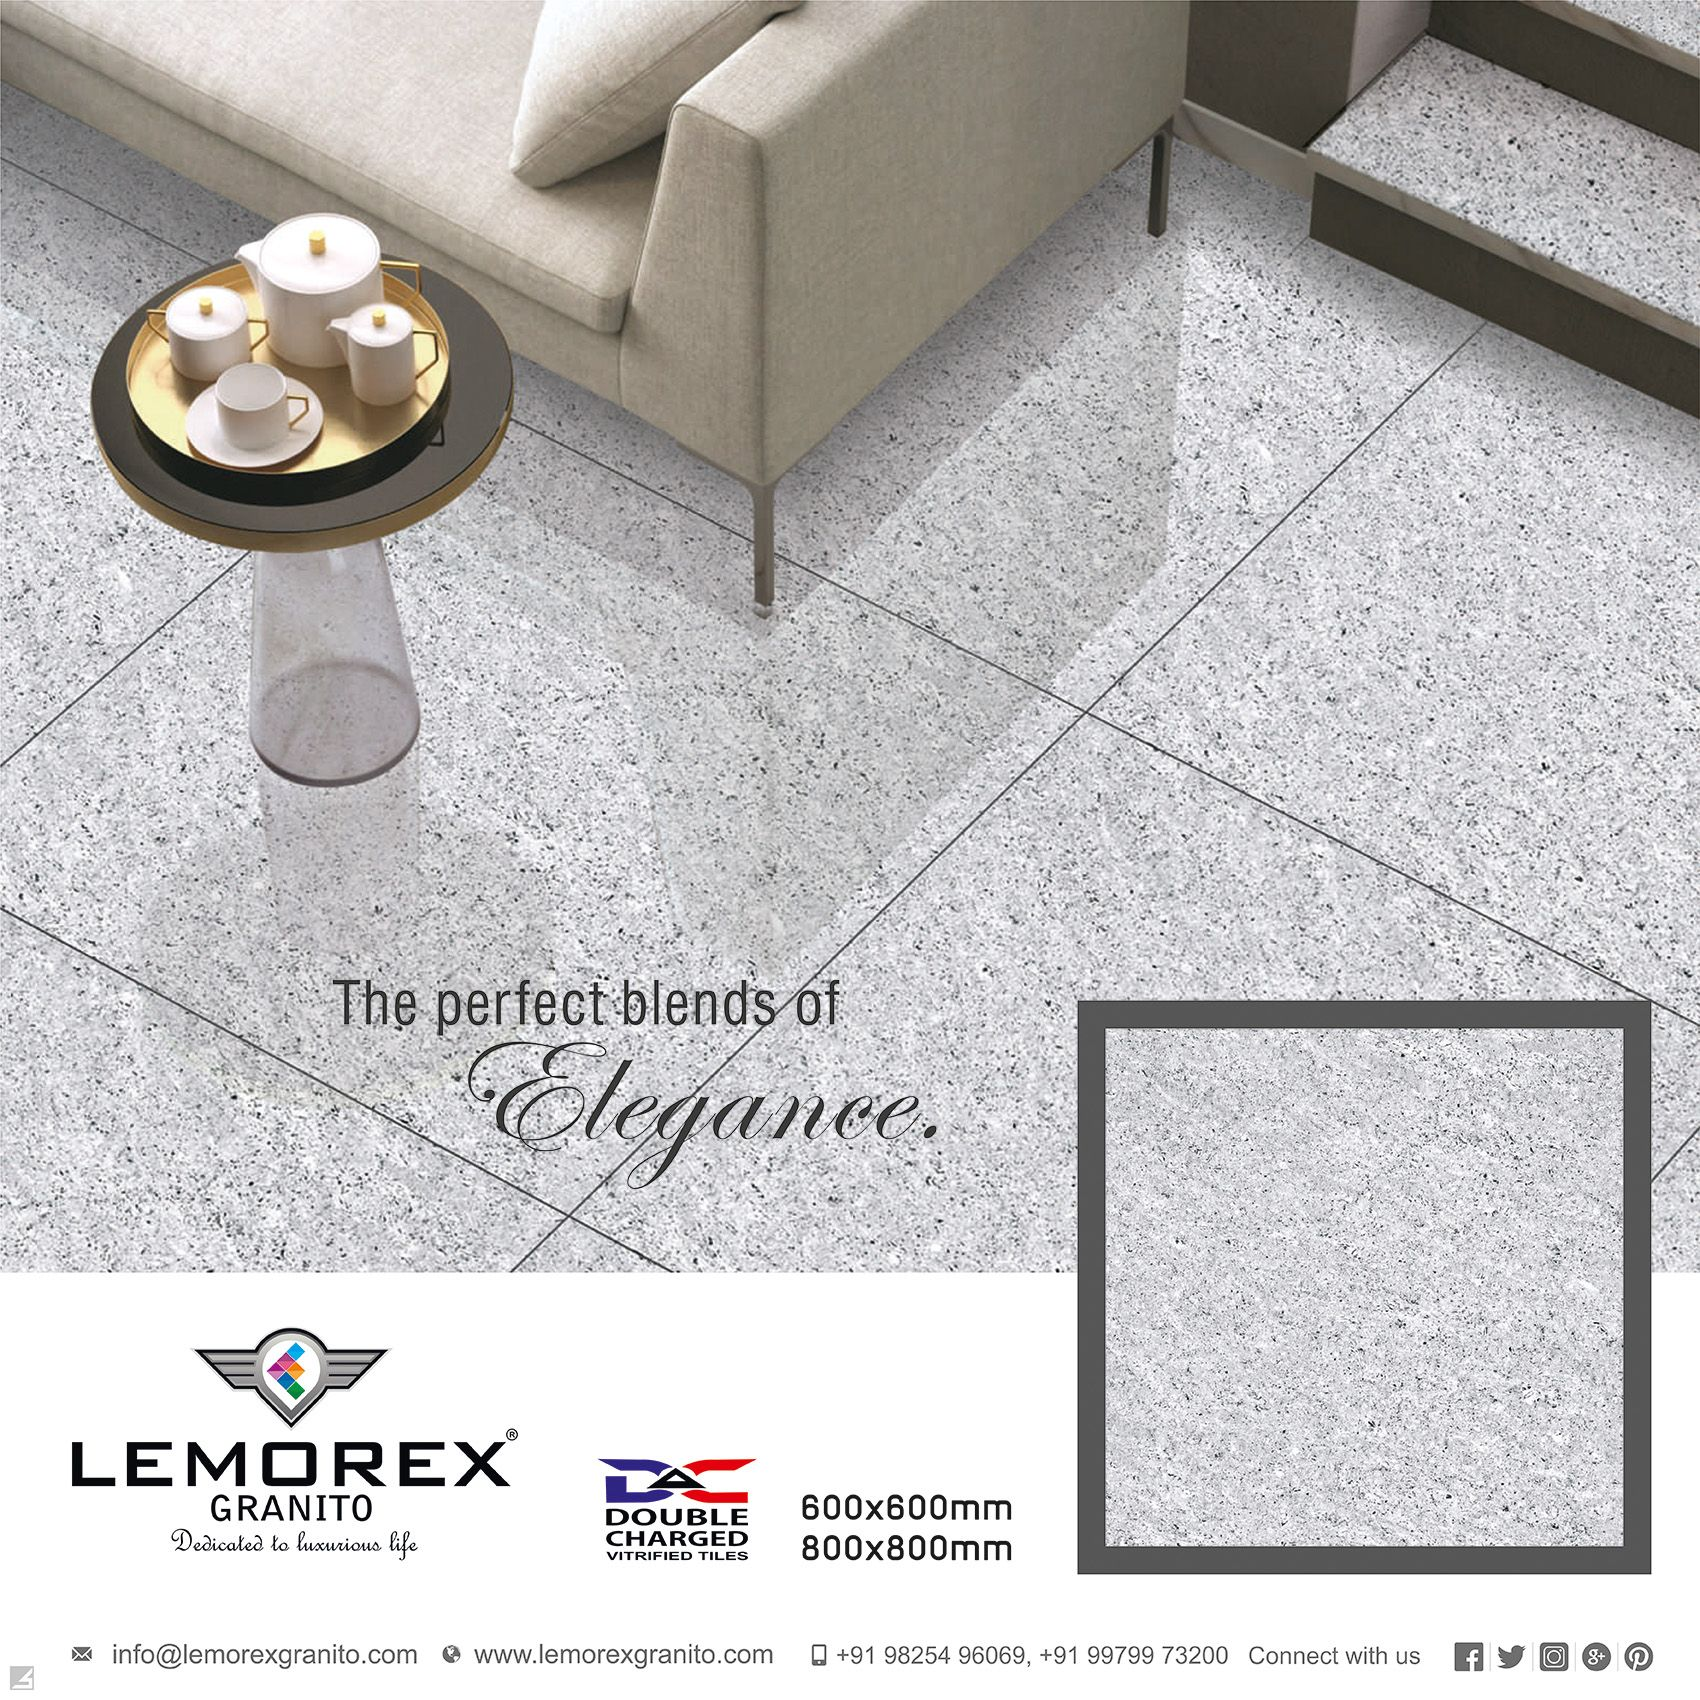 Lemorex granito we try to provide latest products to our valuable lemorex granito we try to provide latest products to our valuable costumer we are the most sought after tiles brand renowned for both excellent q dailygadgetfo Image collections